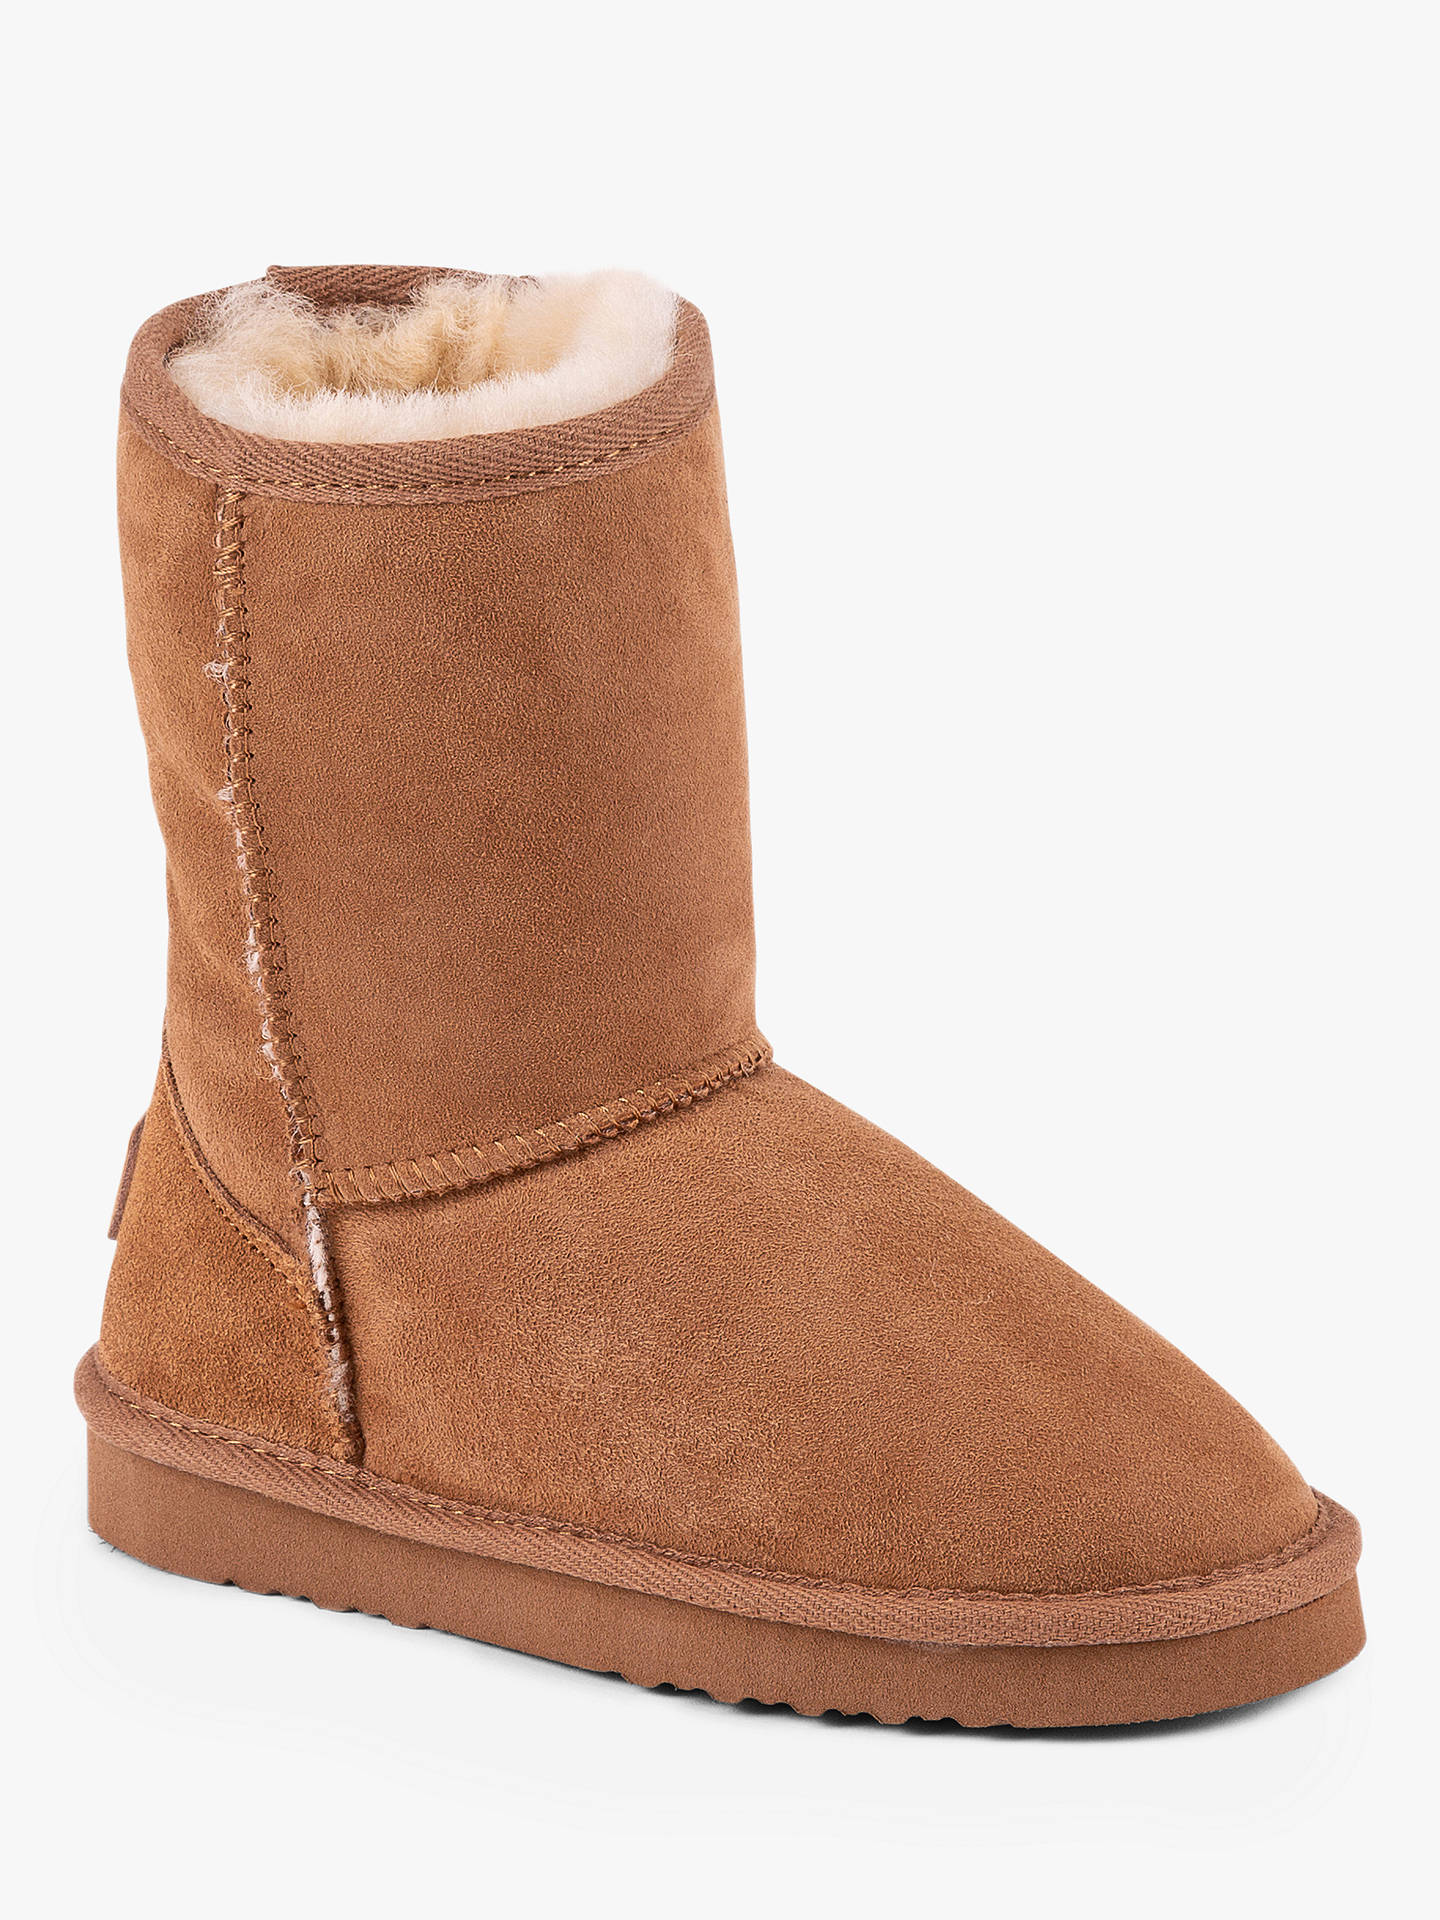 Buy Just Sheepskin Classic Suede Boots, Chestnut, 13 Jnr Online at johnlewis.com